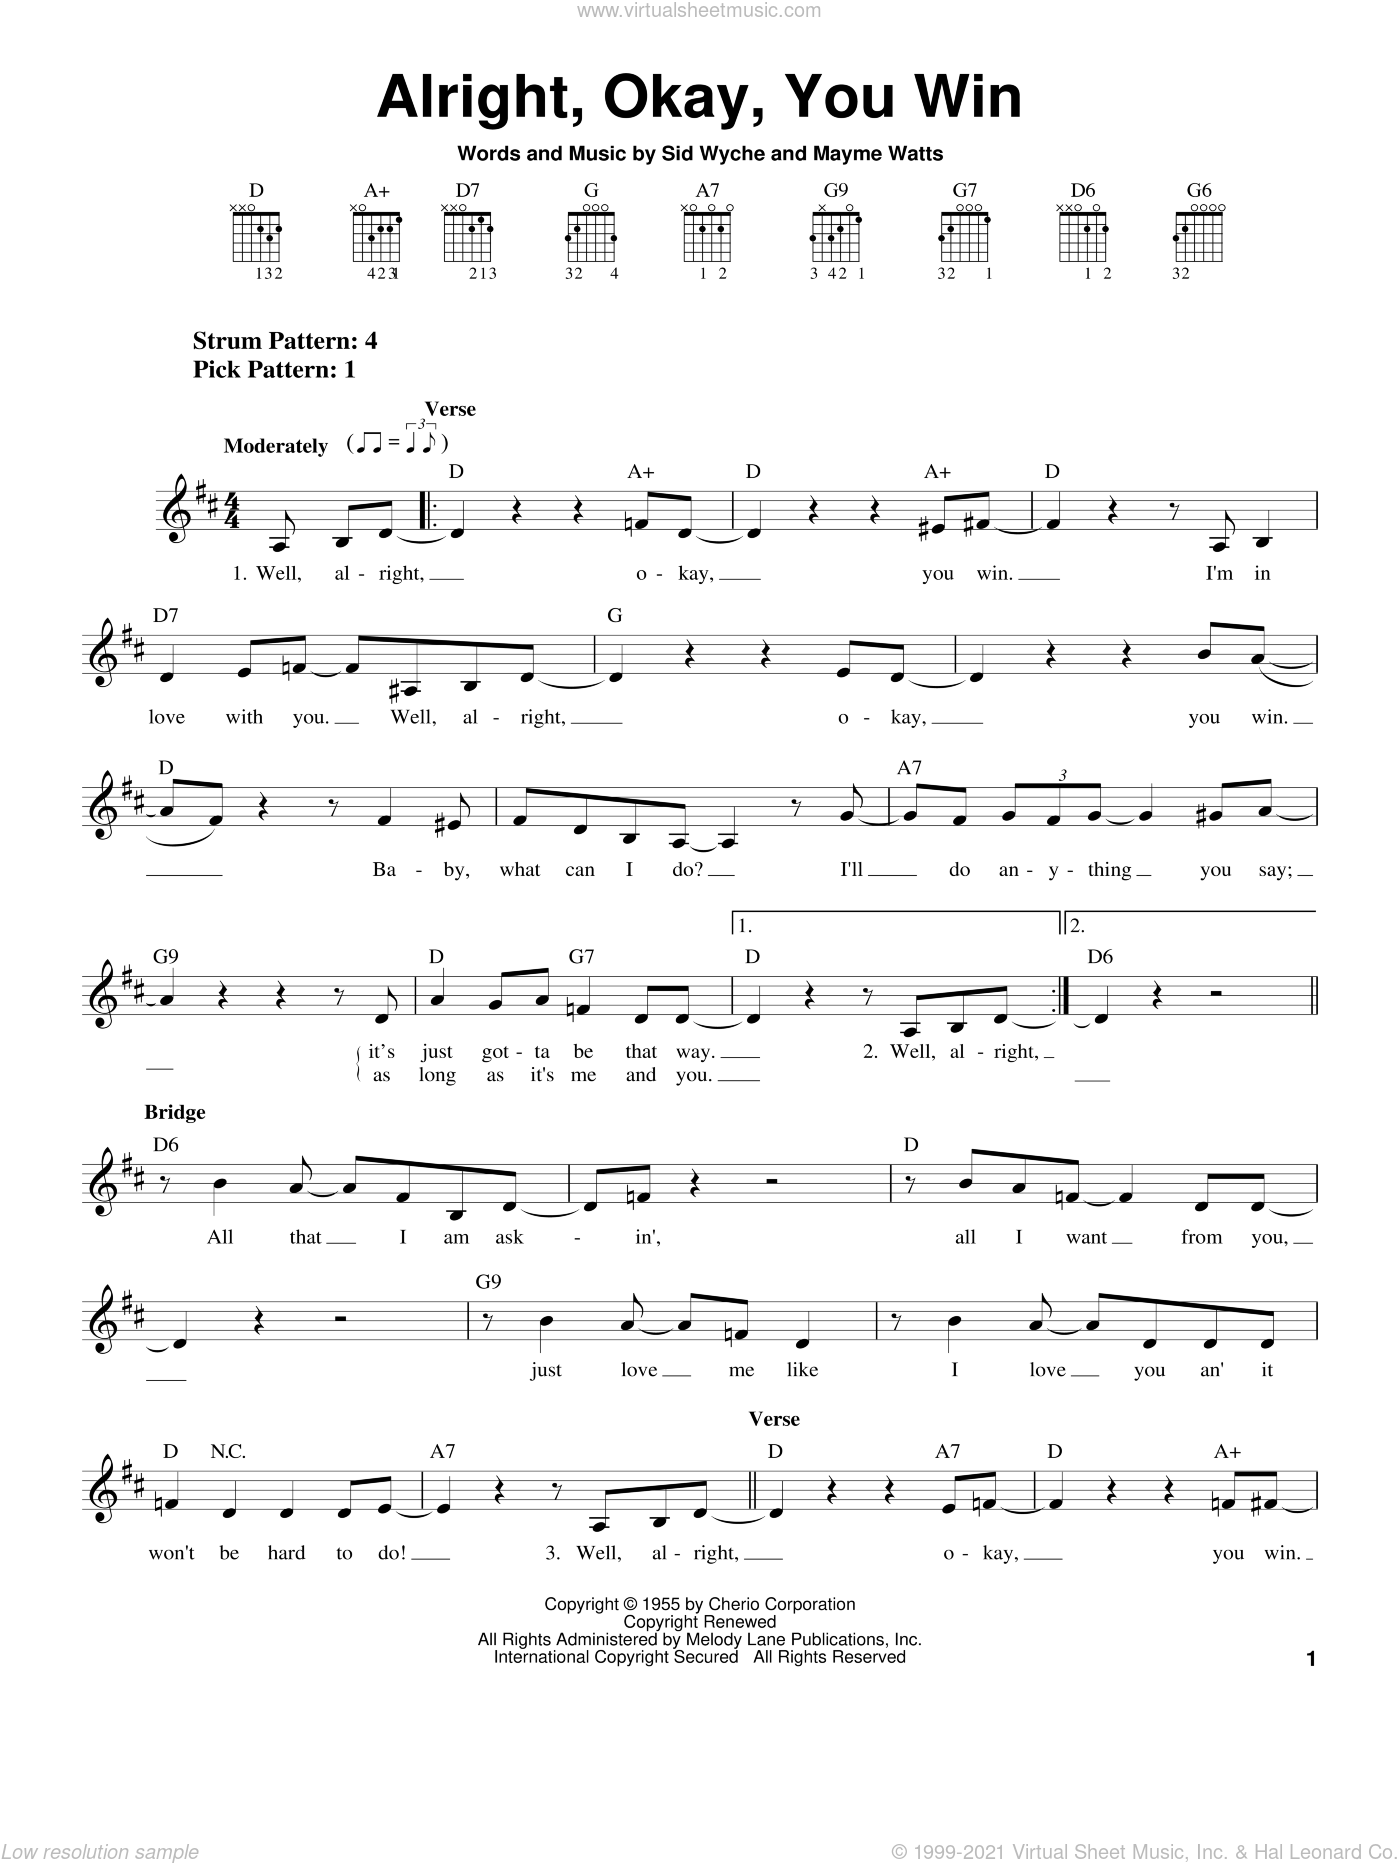 Alright, Okay, You Win sheet music for guitar solo (chords) by Peggy Lee, Mayme Watts and Sid Wyche, easy guitar (chords)